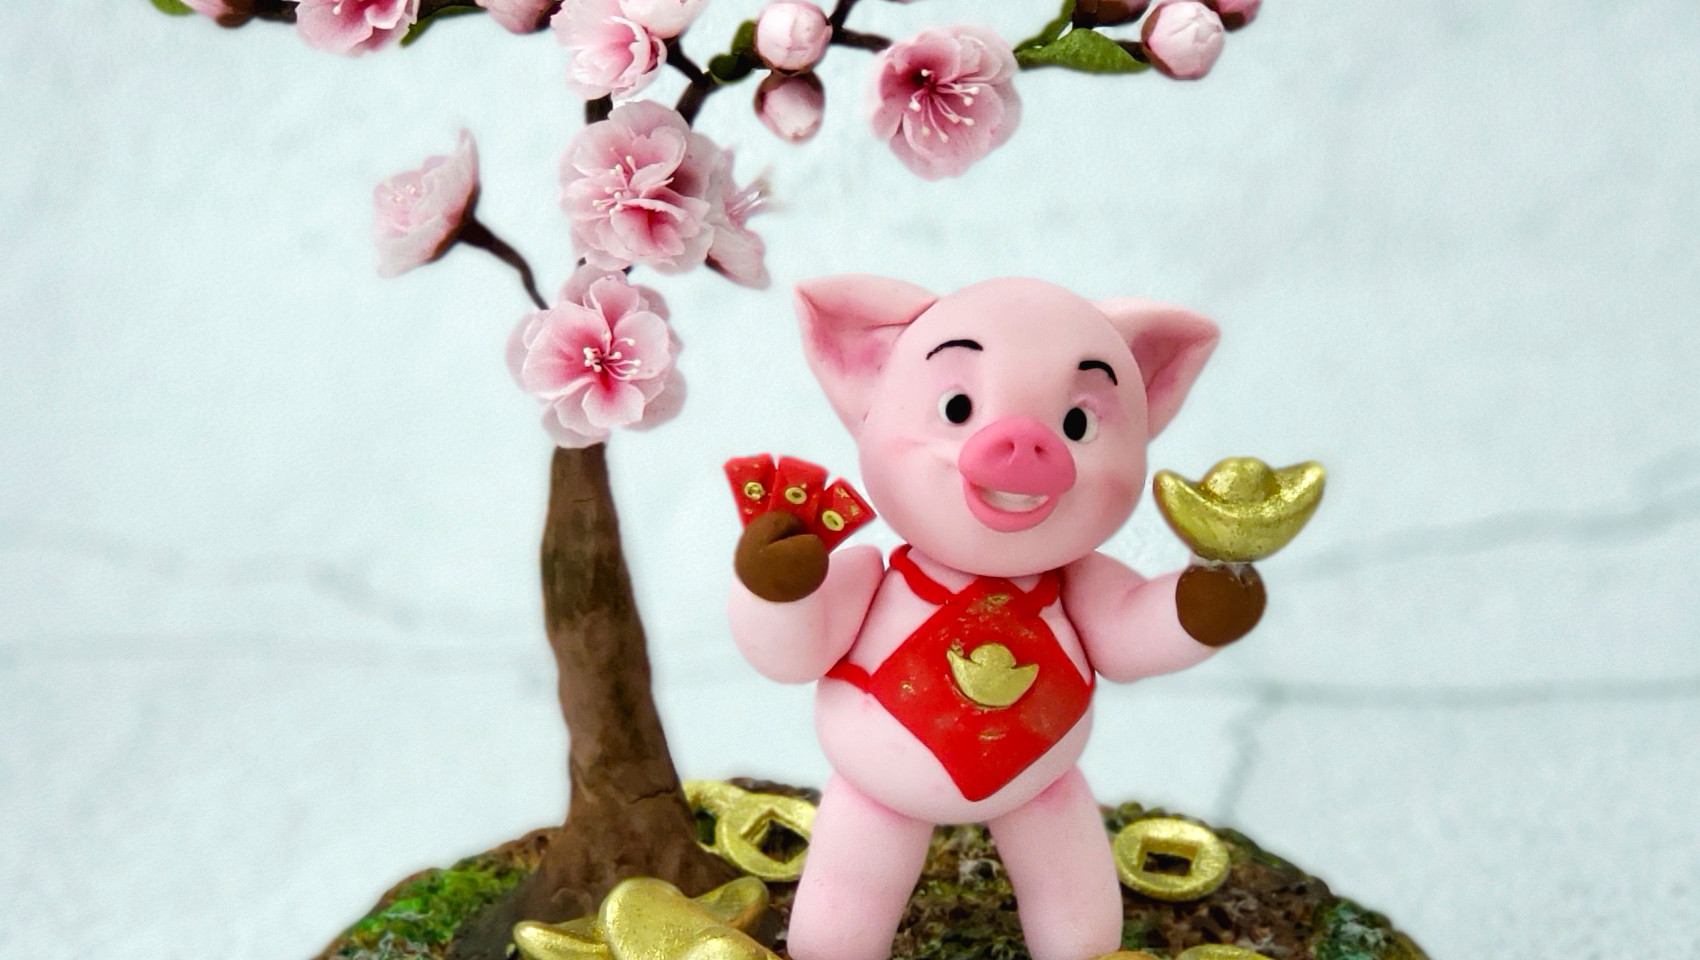 Piggy and Peach Tree